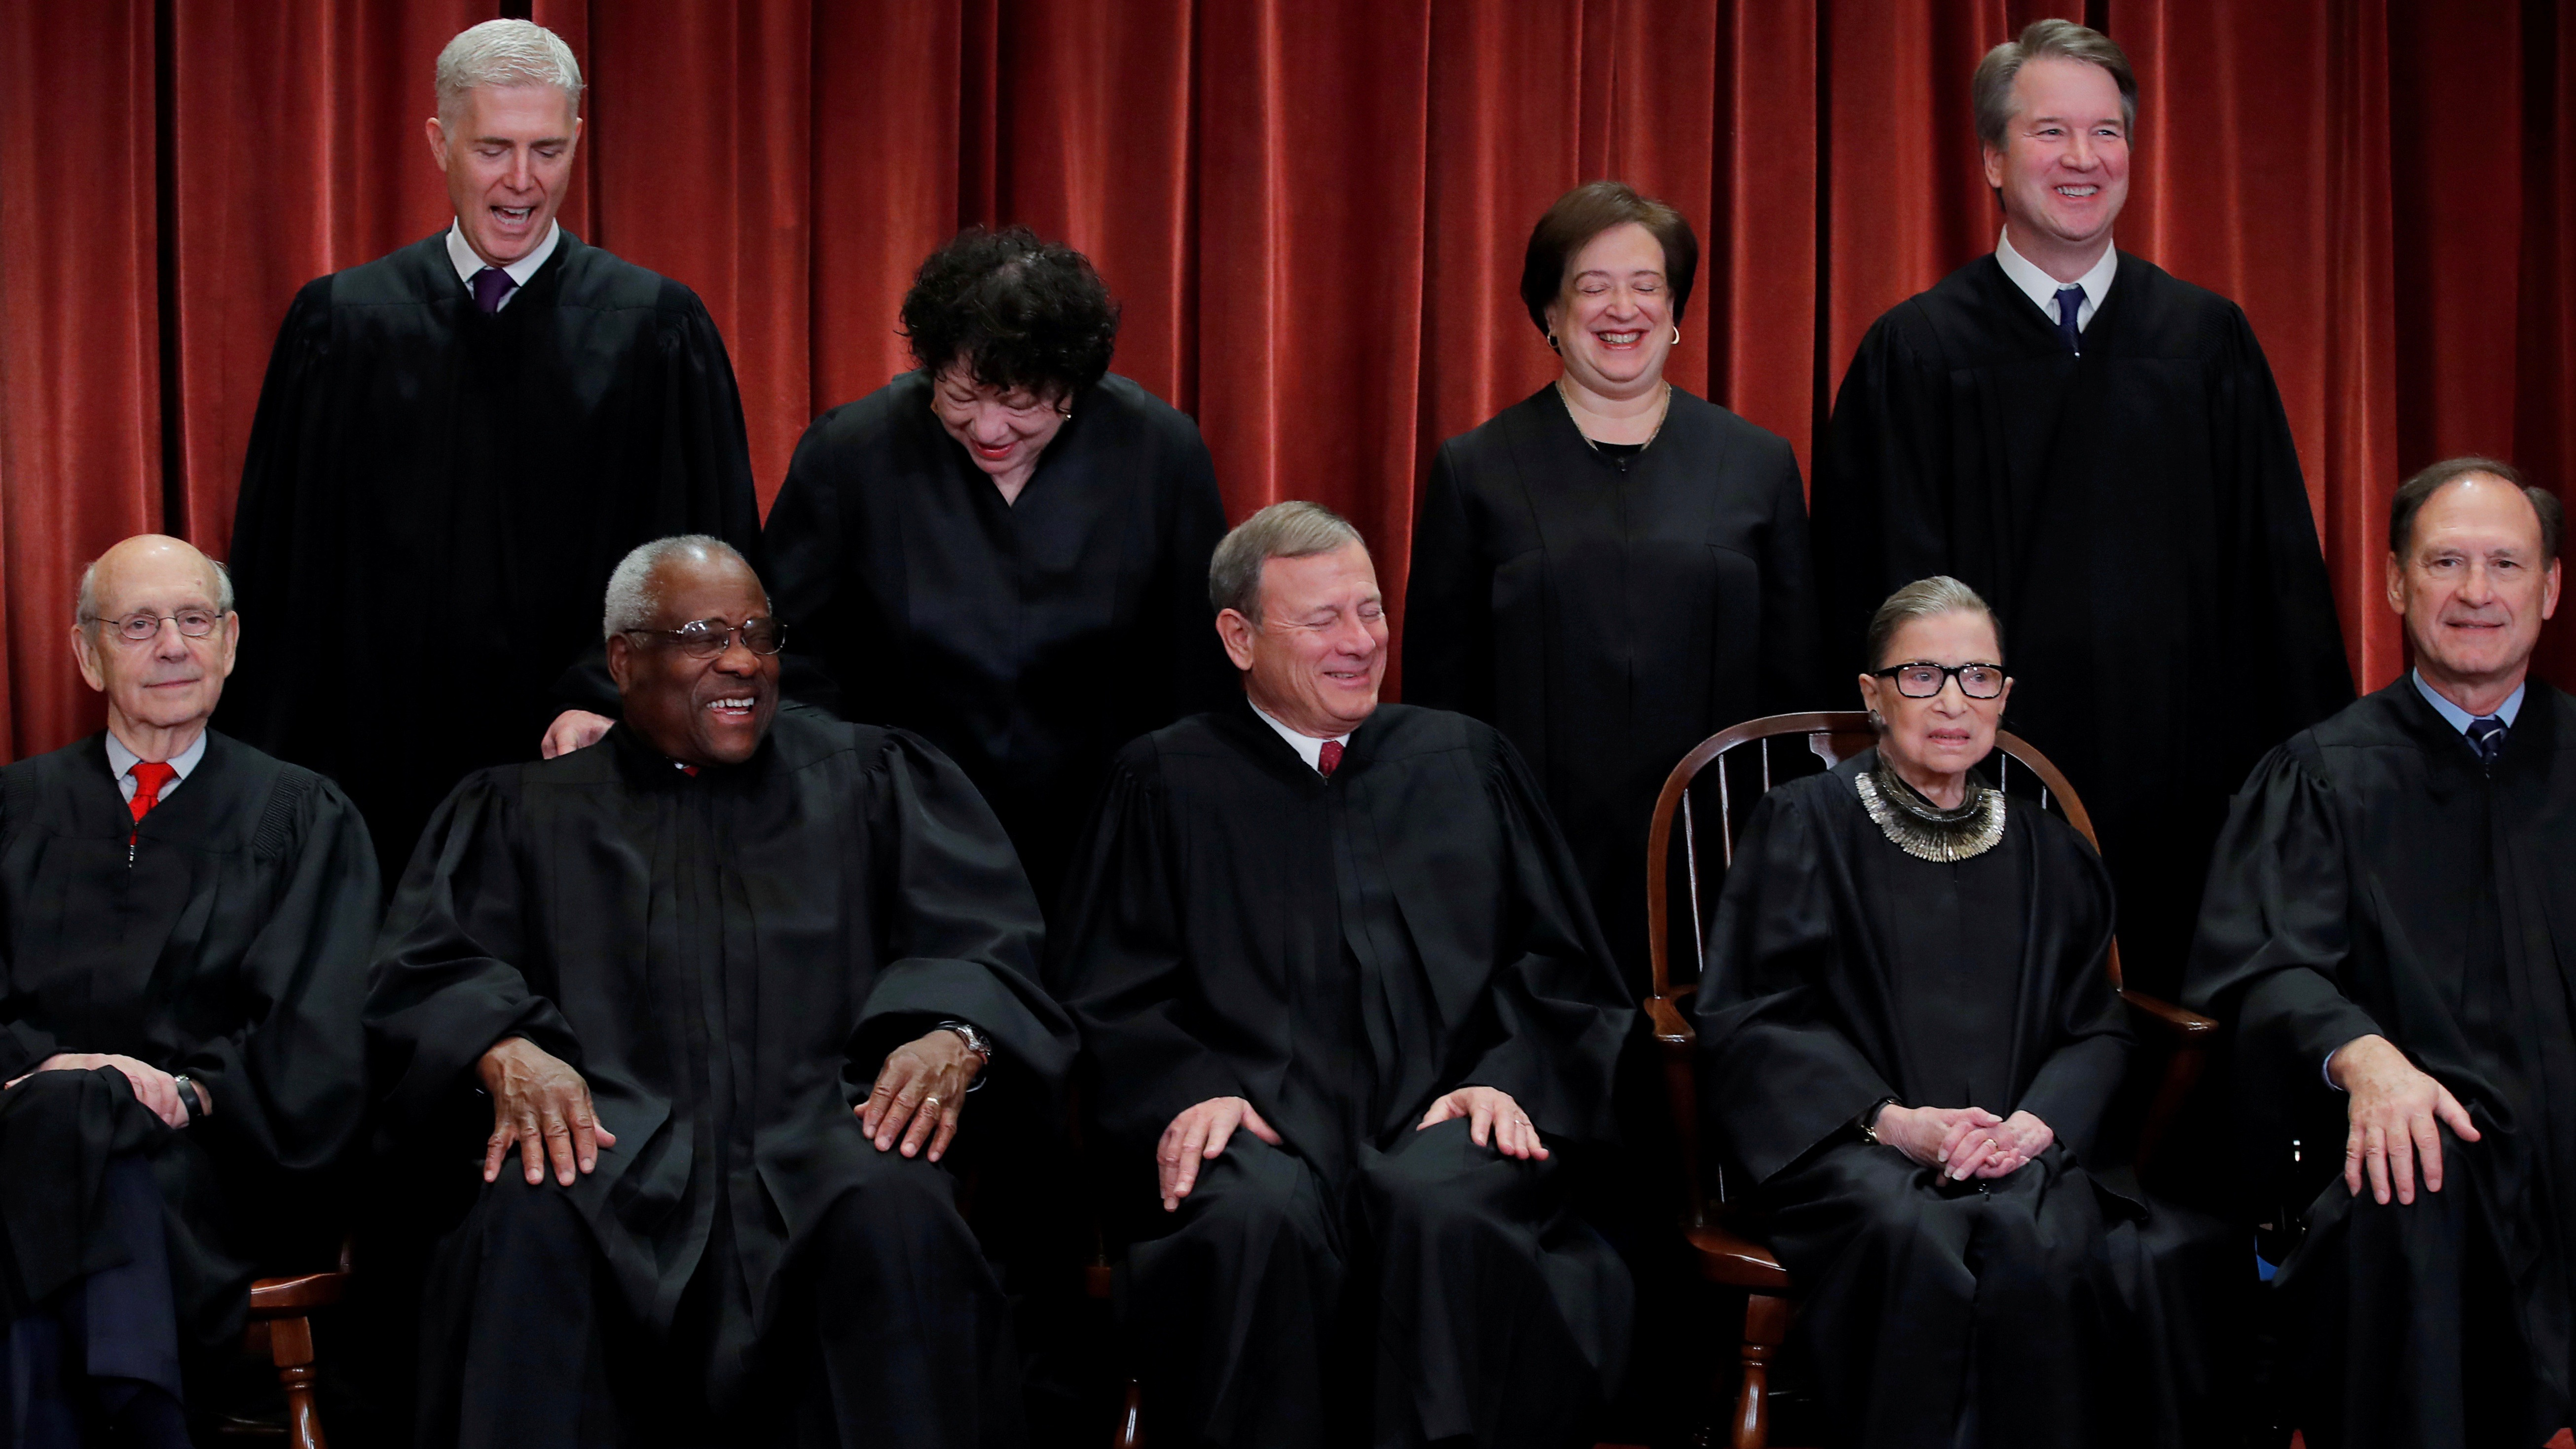 US Supreme Court justices Nov. 30. Seated (L-R): Stephen Breyer, Clarence Thomas, John G. Roberts, Ruth Bader Ginsburg and Samuel Alito, Jr. Standing behind (L-R): Neil Gorsuch, Sonia Sotomayor, Elena Kagan, and Brett Kavanaugh.